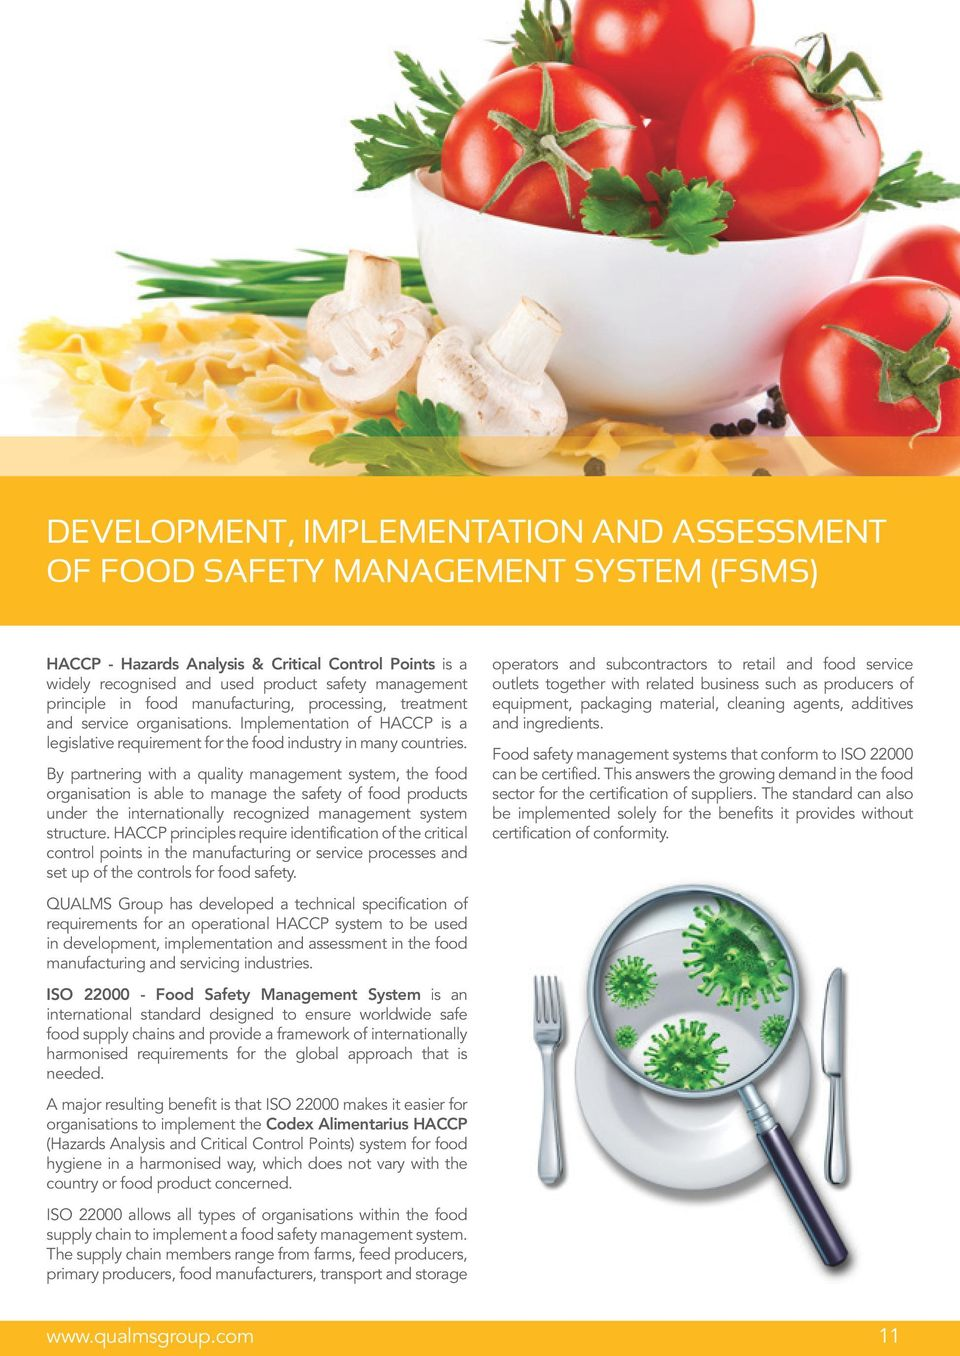 By partnering with a quality management system, the food organisation is able to manage the safety of food products under the internationally recognized management system structure.